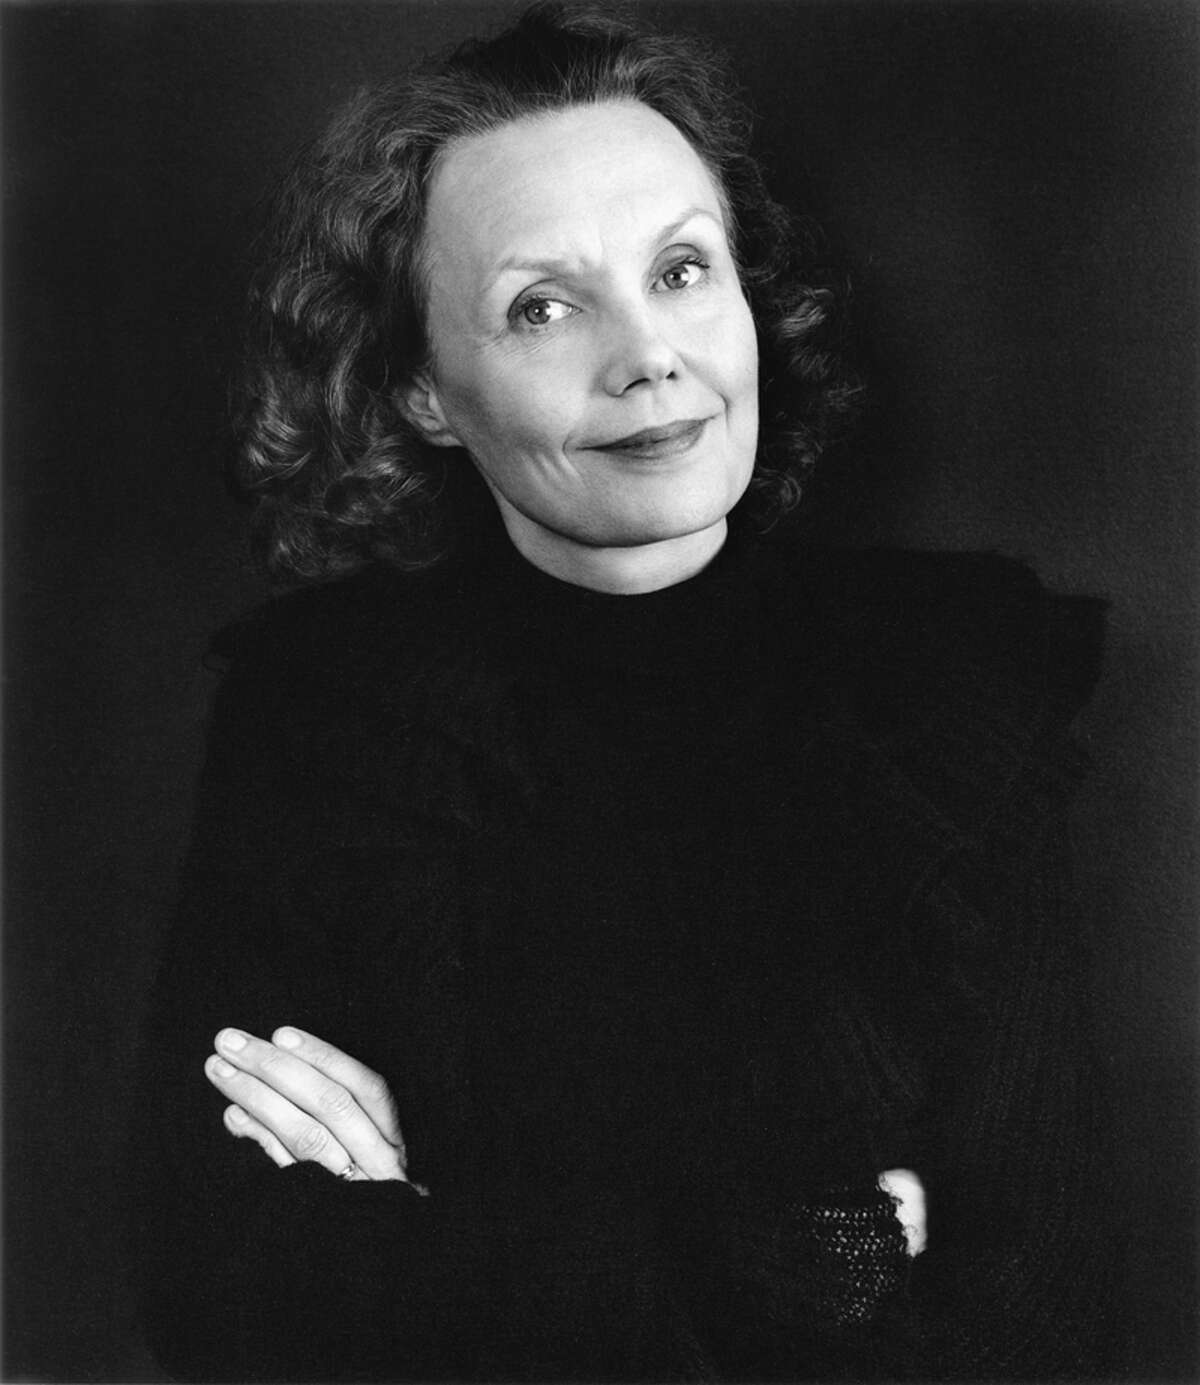 Expect a world premiere from composer Kaija Saariaho Feb. 23-24.